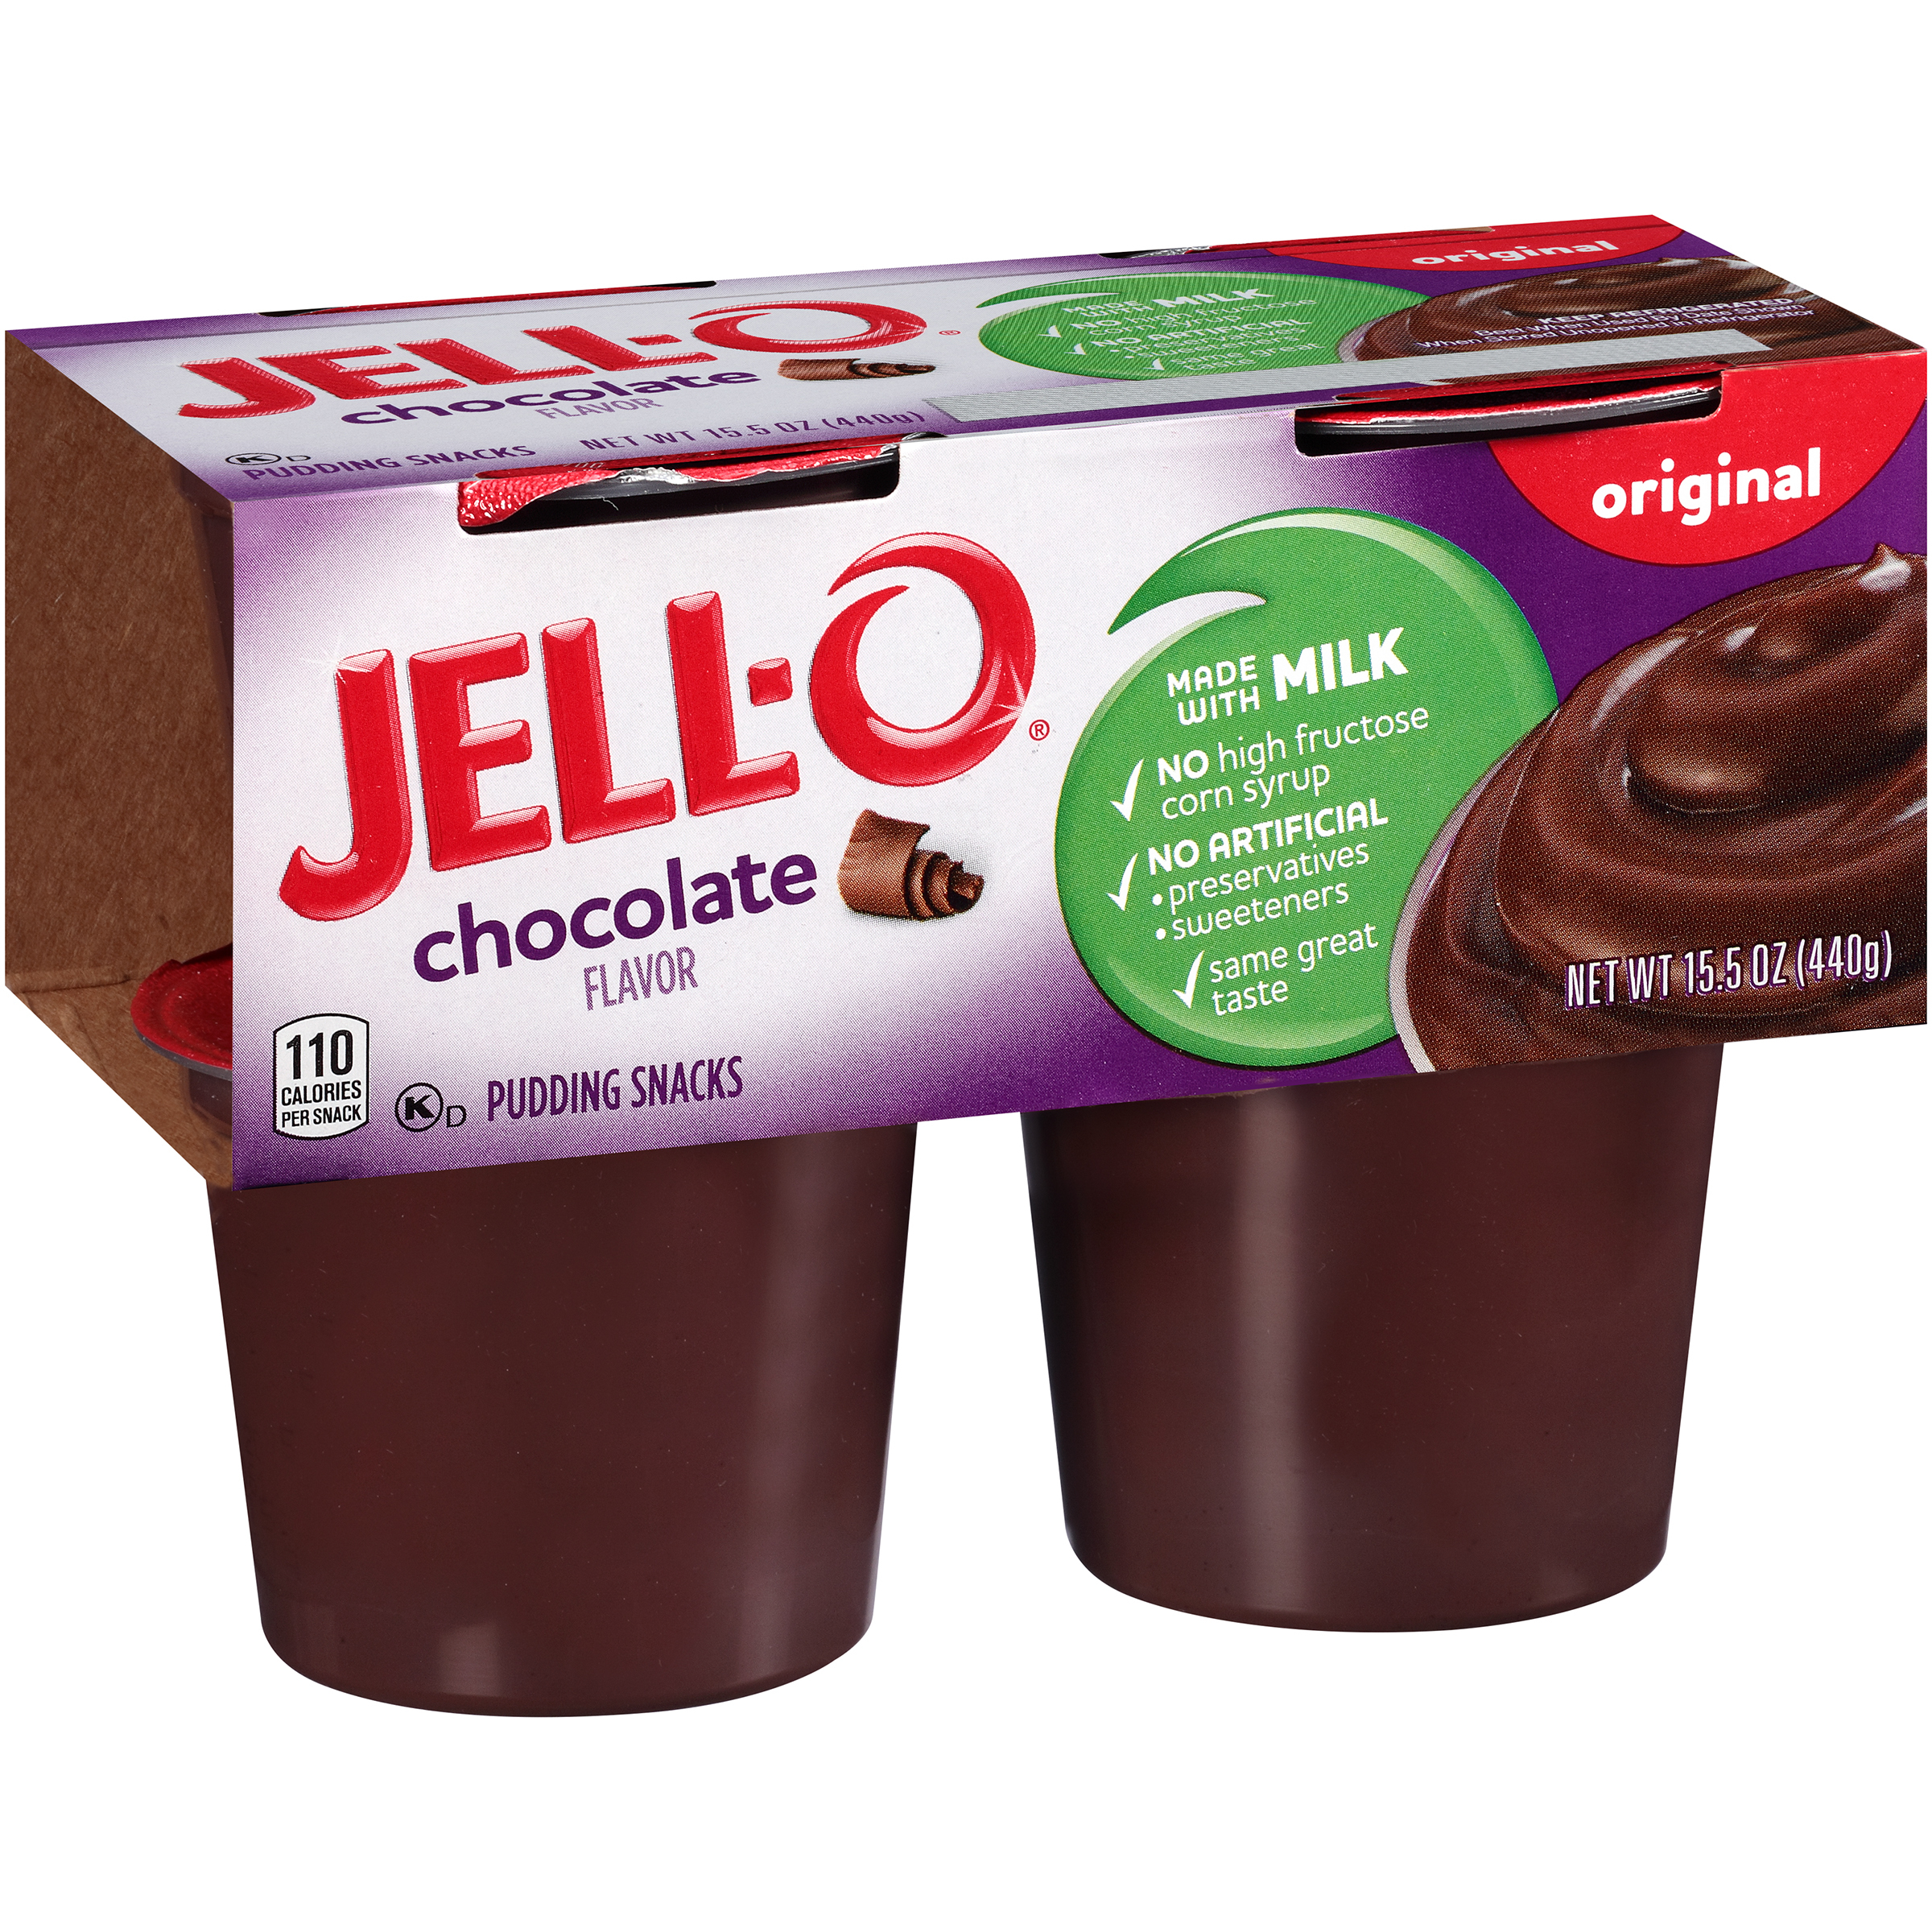 Jell-O Original Chocolate Pudding Snacks, 3.875 Oz., 4 Count